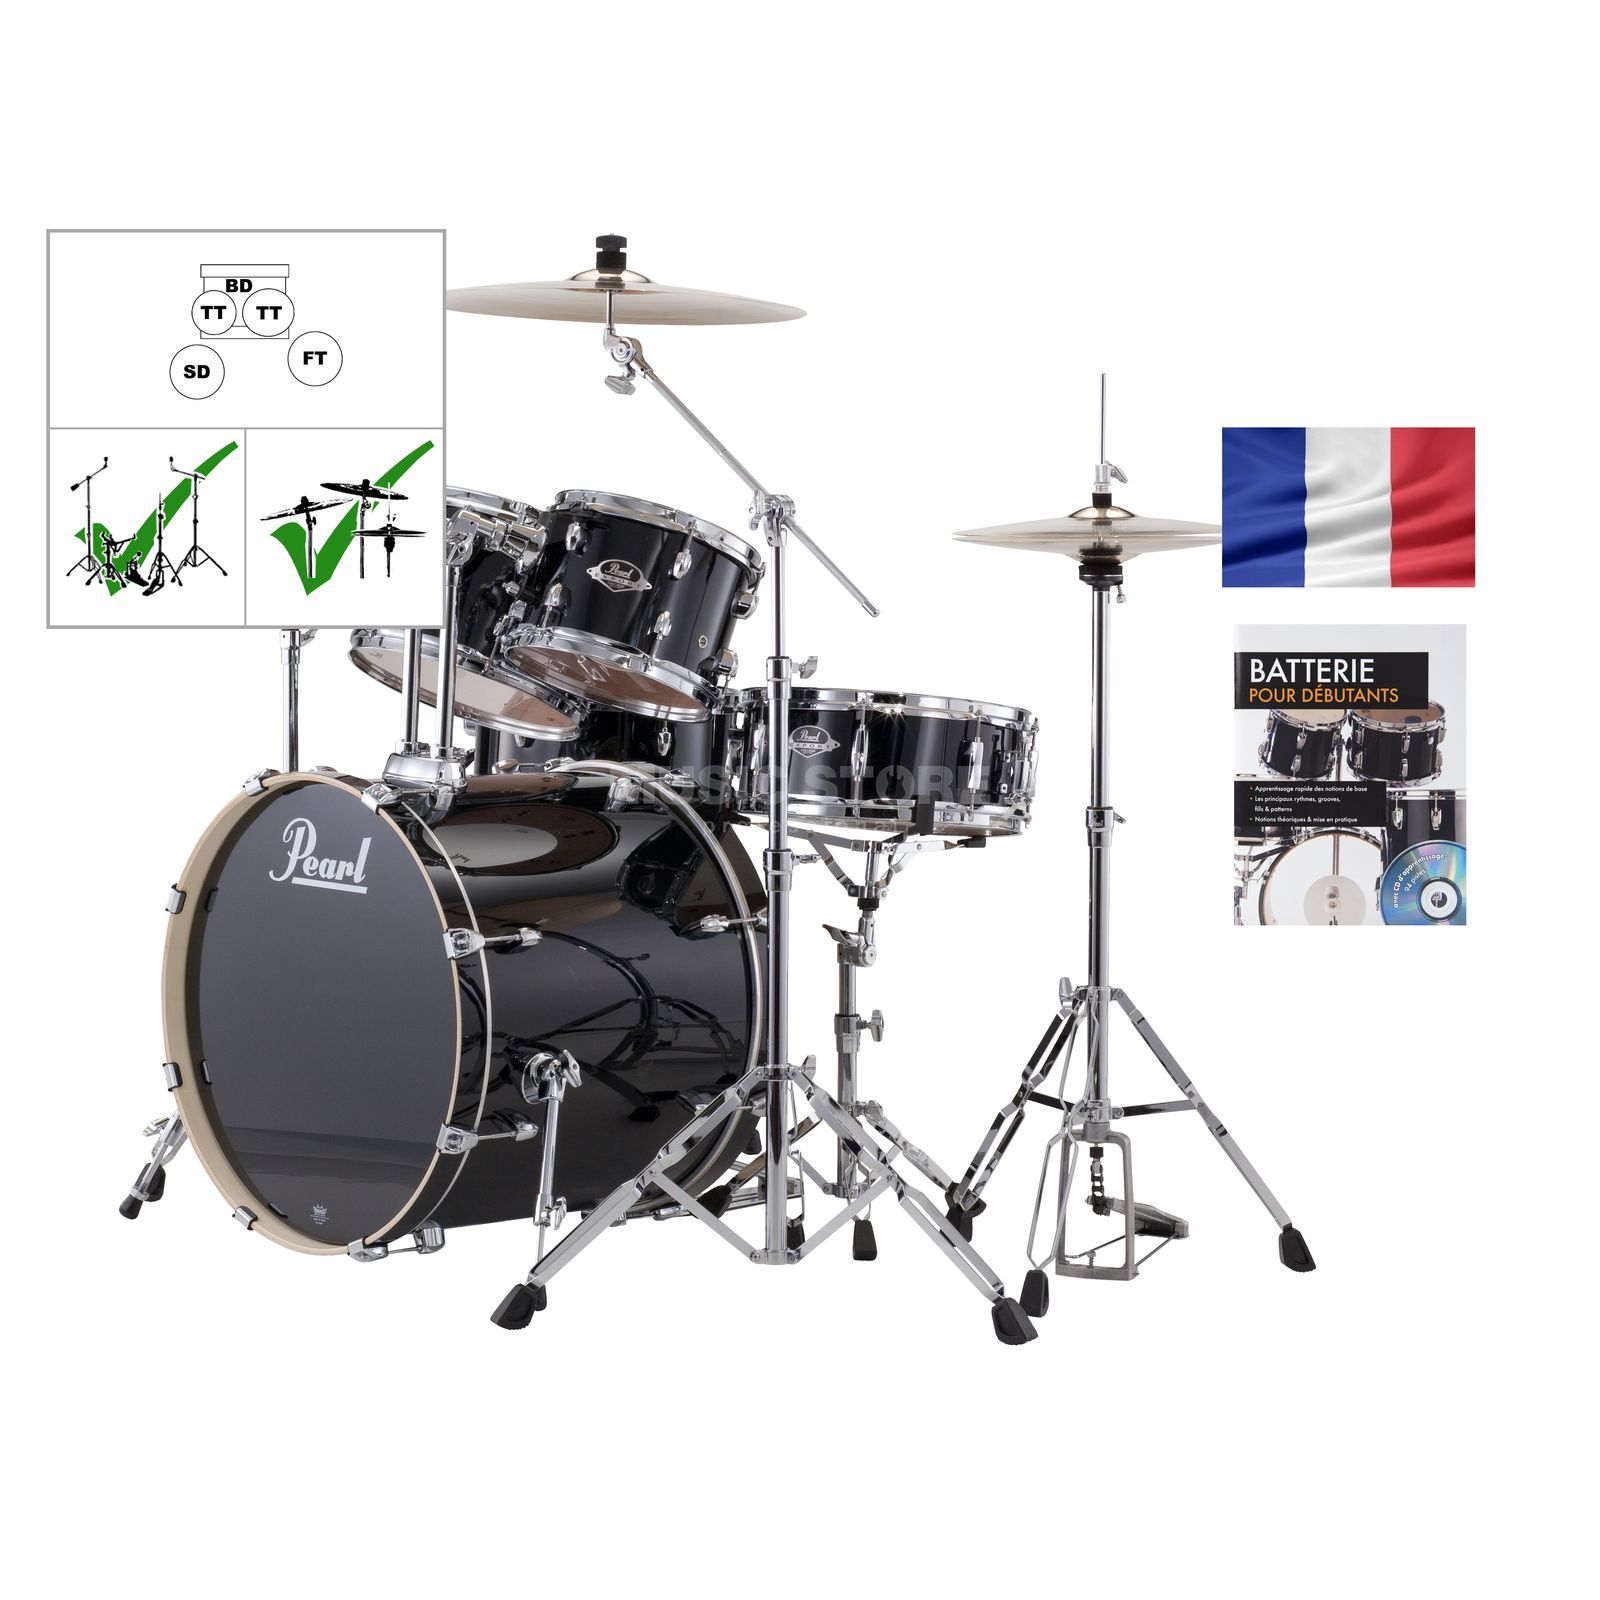 SET PEARL Export Batterie EXX725Z /C, #Jet Black + partitions Produktbild